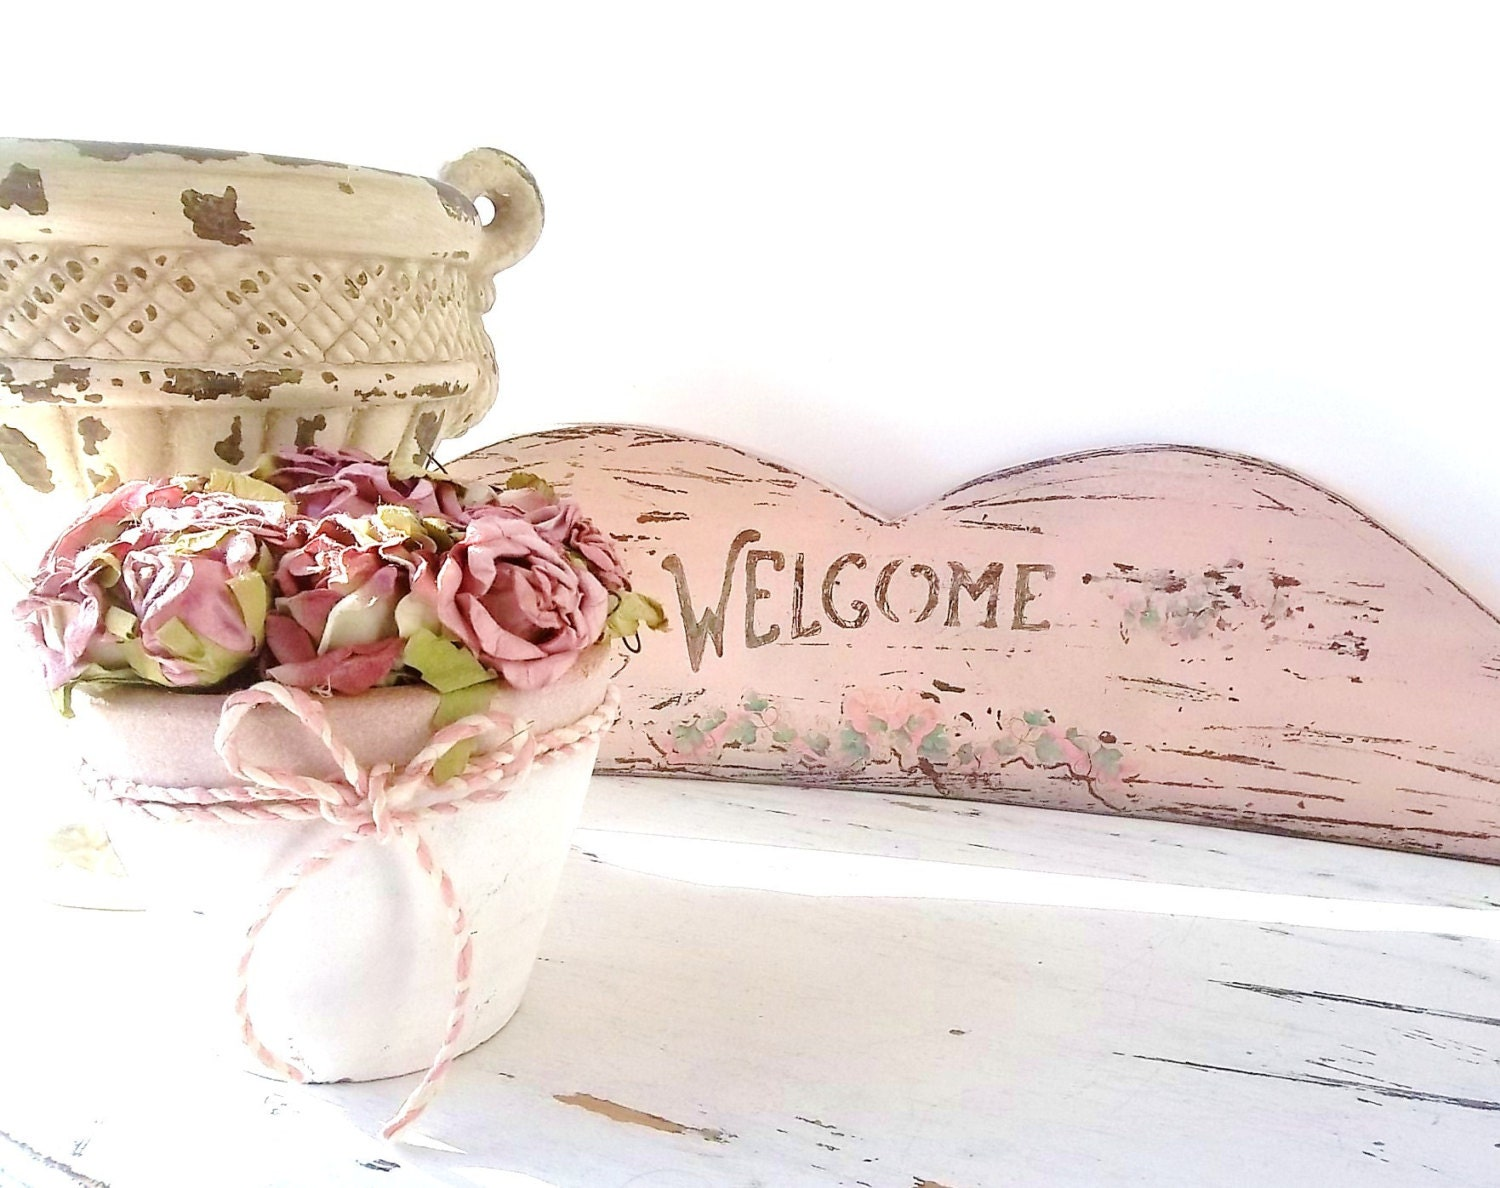 Mallard Green Industrial Metal Pendant 18195 P additionally Home Office Brick Walls further Meubles Decoration Design Salon Moderne besides Rustic Wel e Sign Pink Shabby Chic likewise Greeting Card Banner With Colorful Paper Butterflies Vector 6781866. on vintage modern home decor